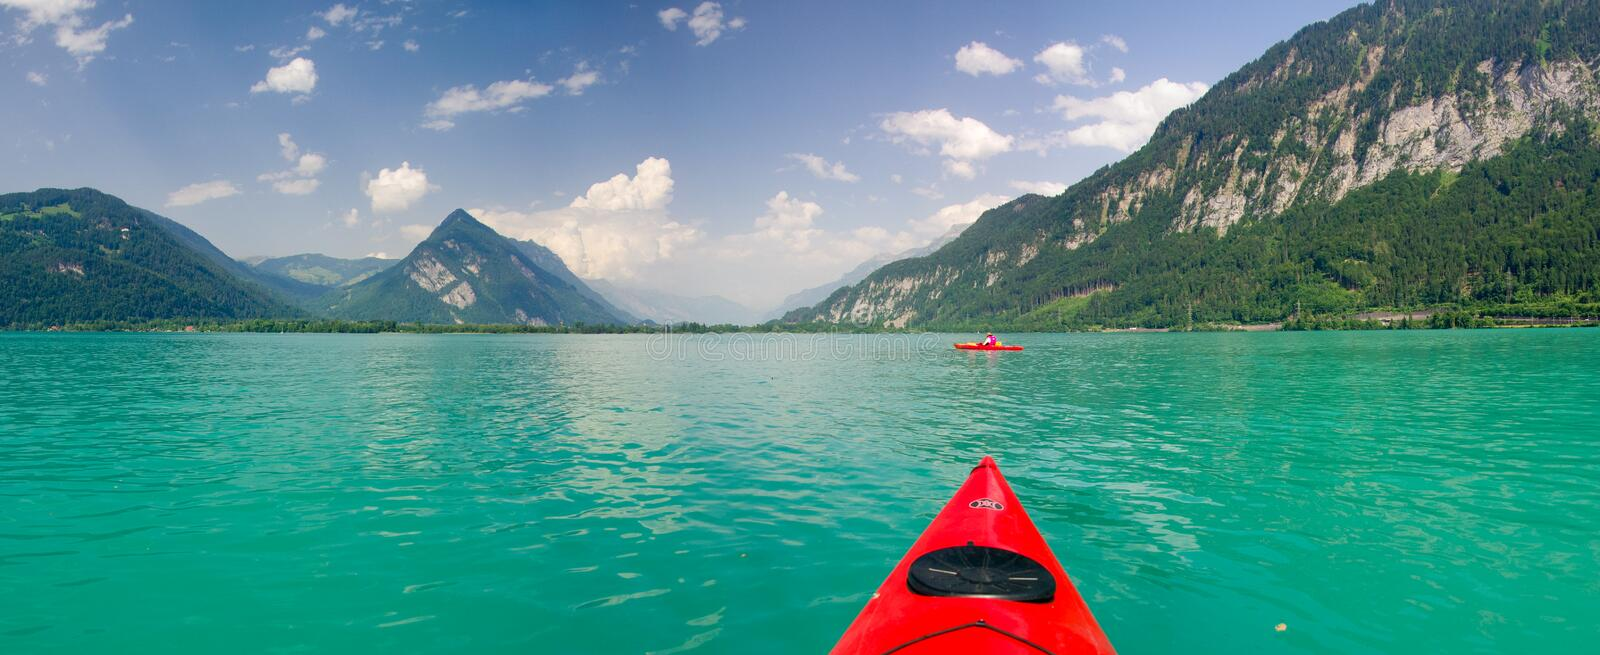 Kayaking på Thunersee royaltyfria bilder